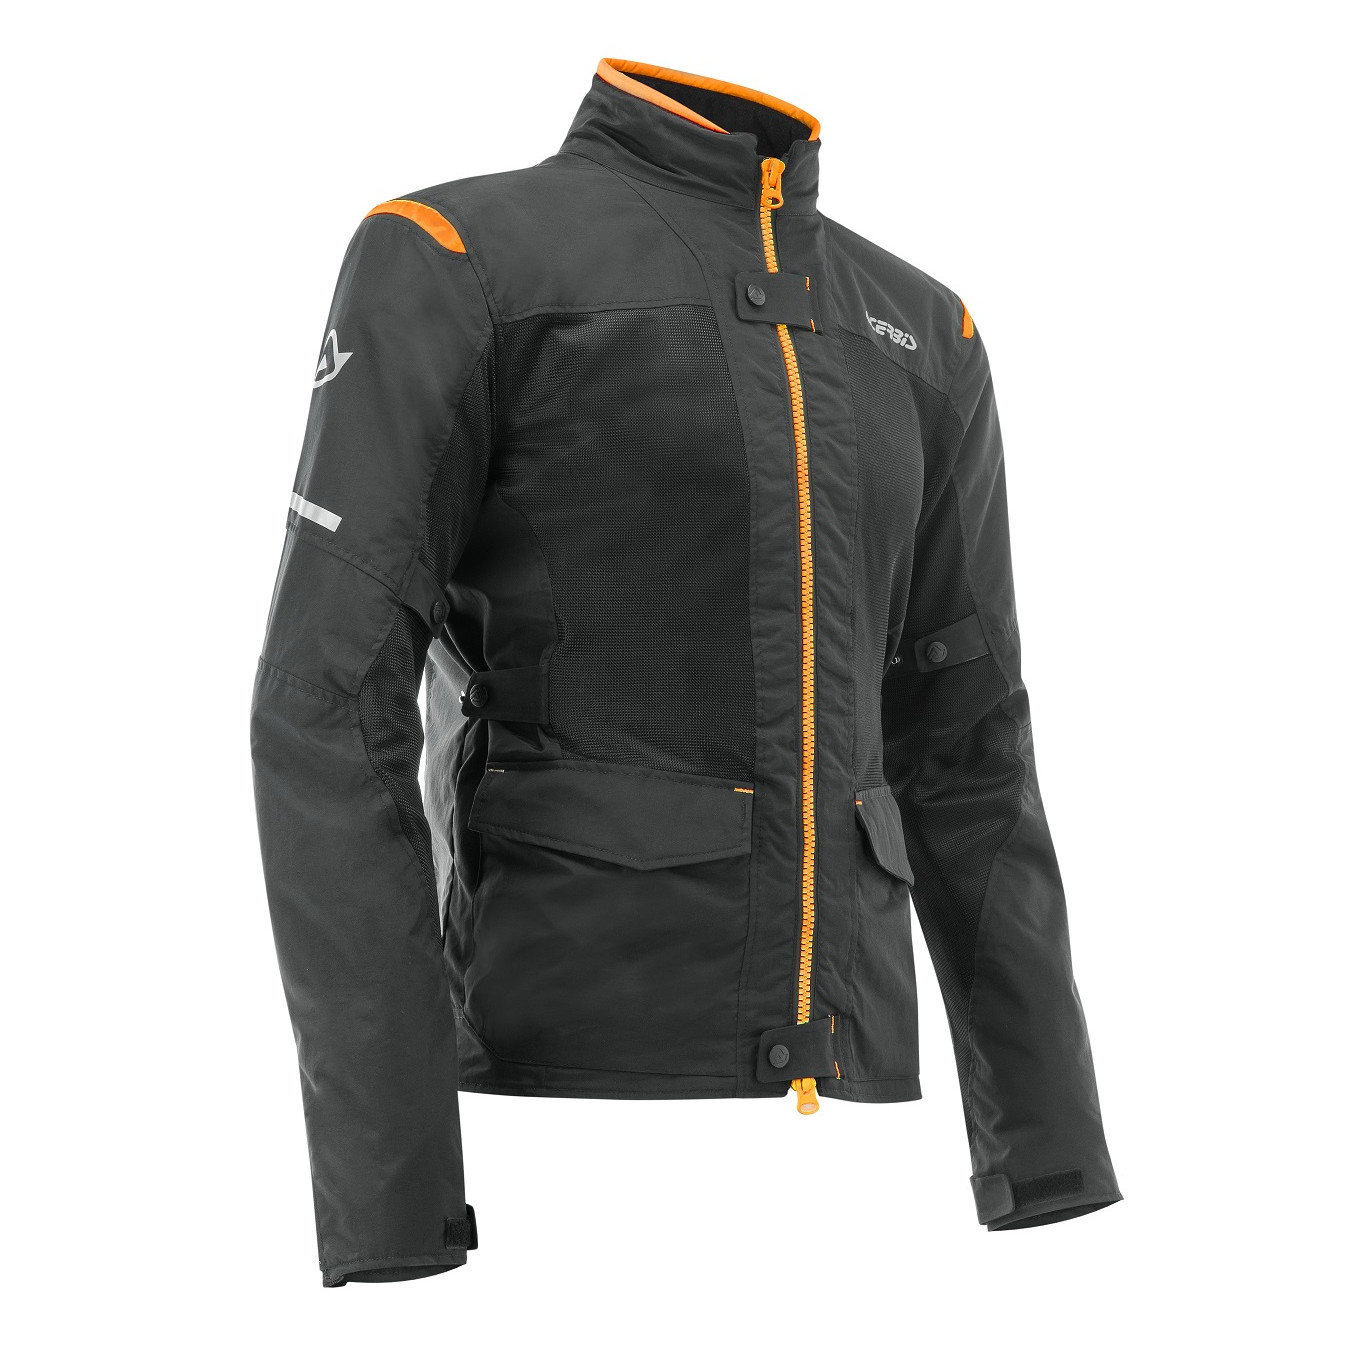 ACERBIS - RAMSEY MY VENTED 2.0 LONG JACKET - BLACK ORANGE